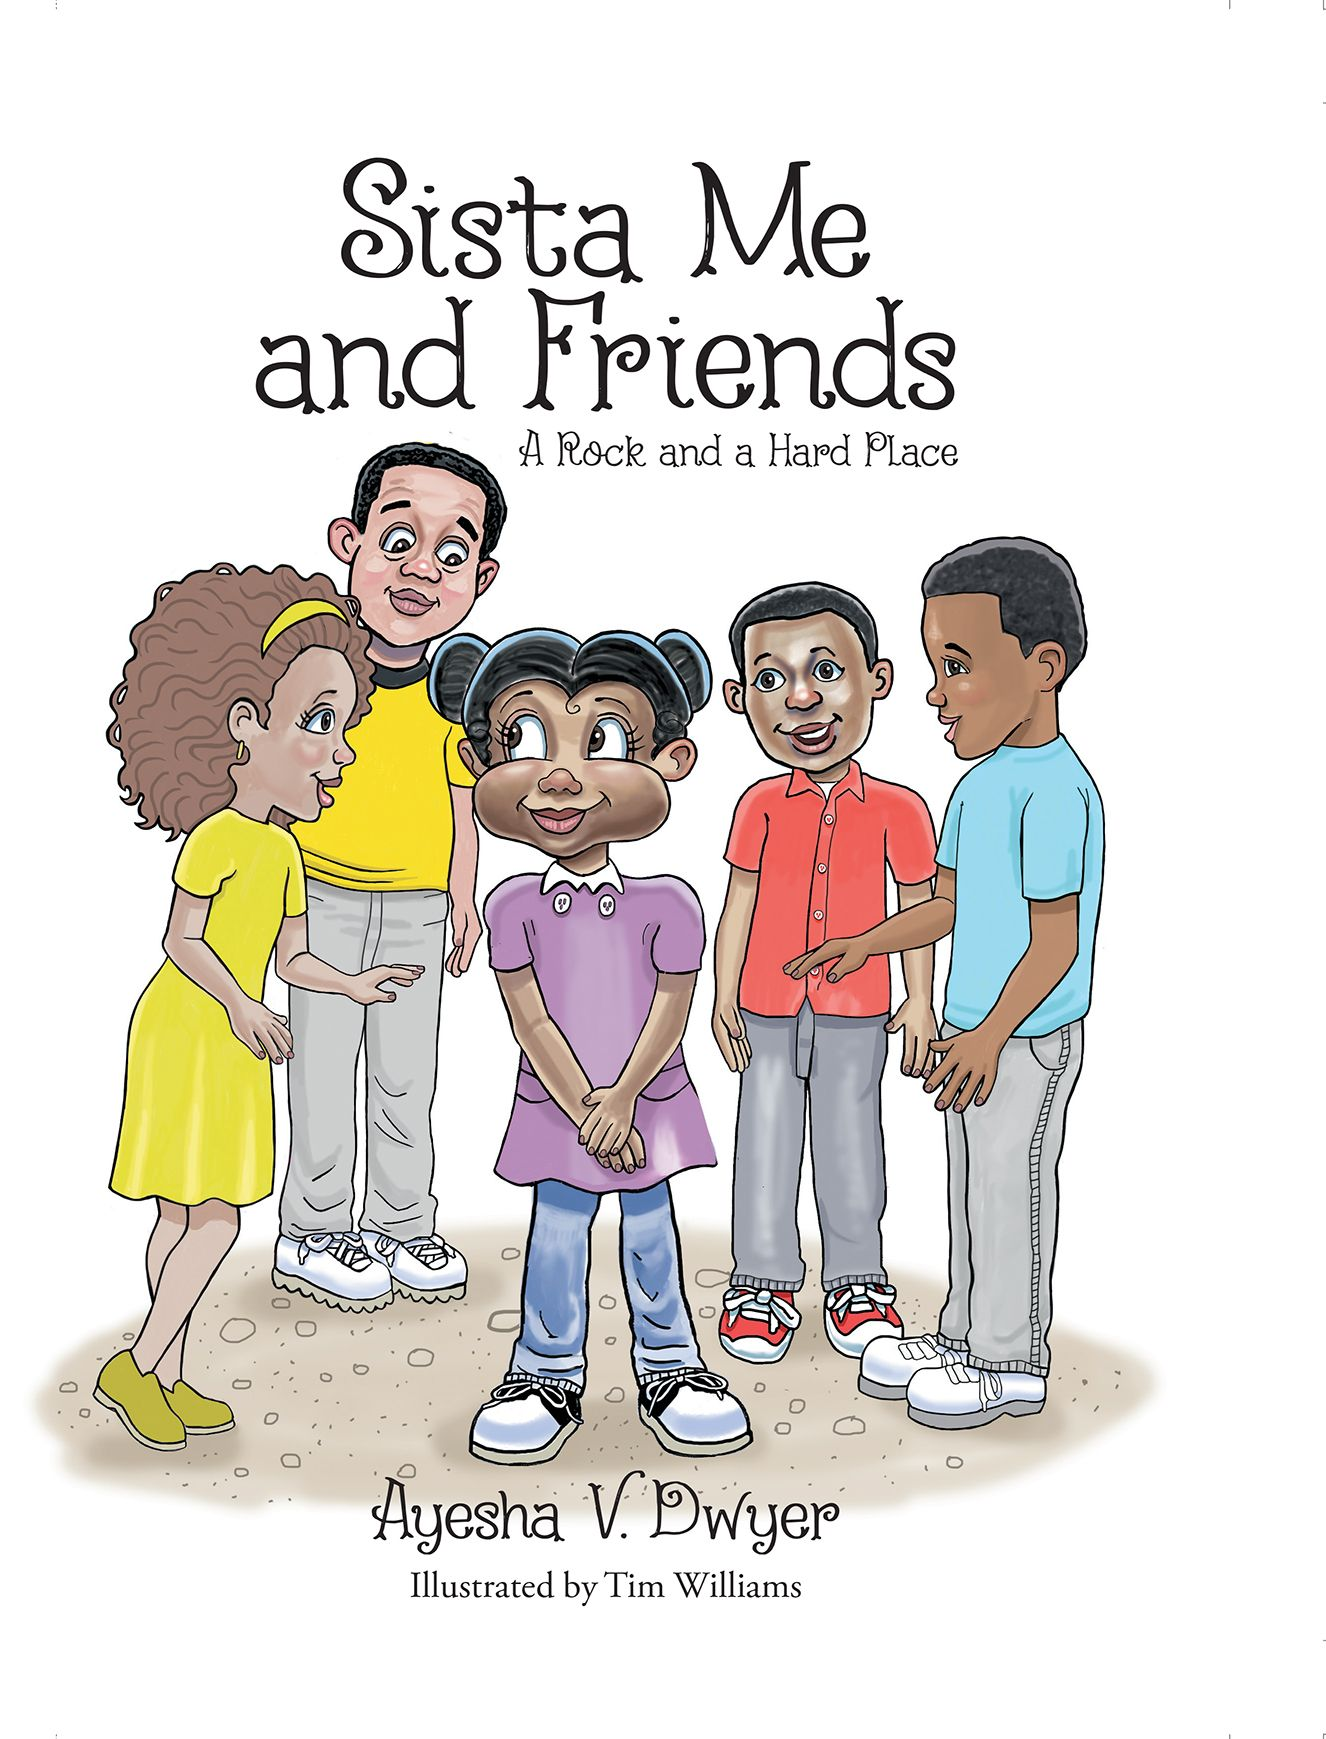 Sista Me and Friends - A Rock and a Hard Place